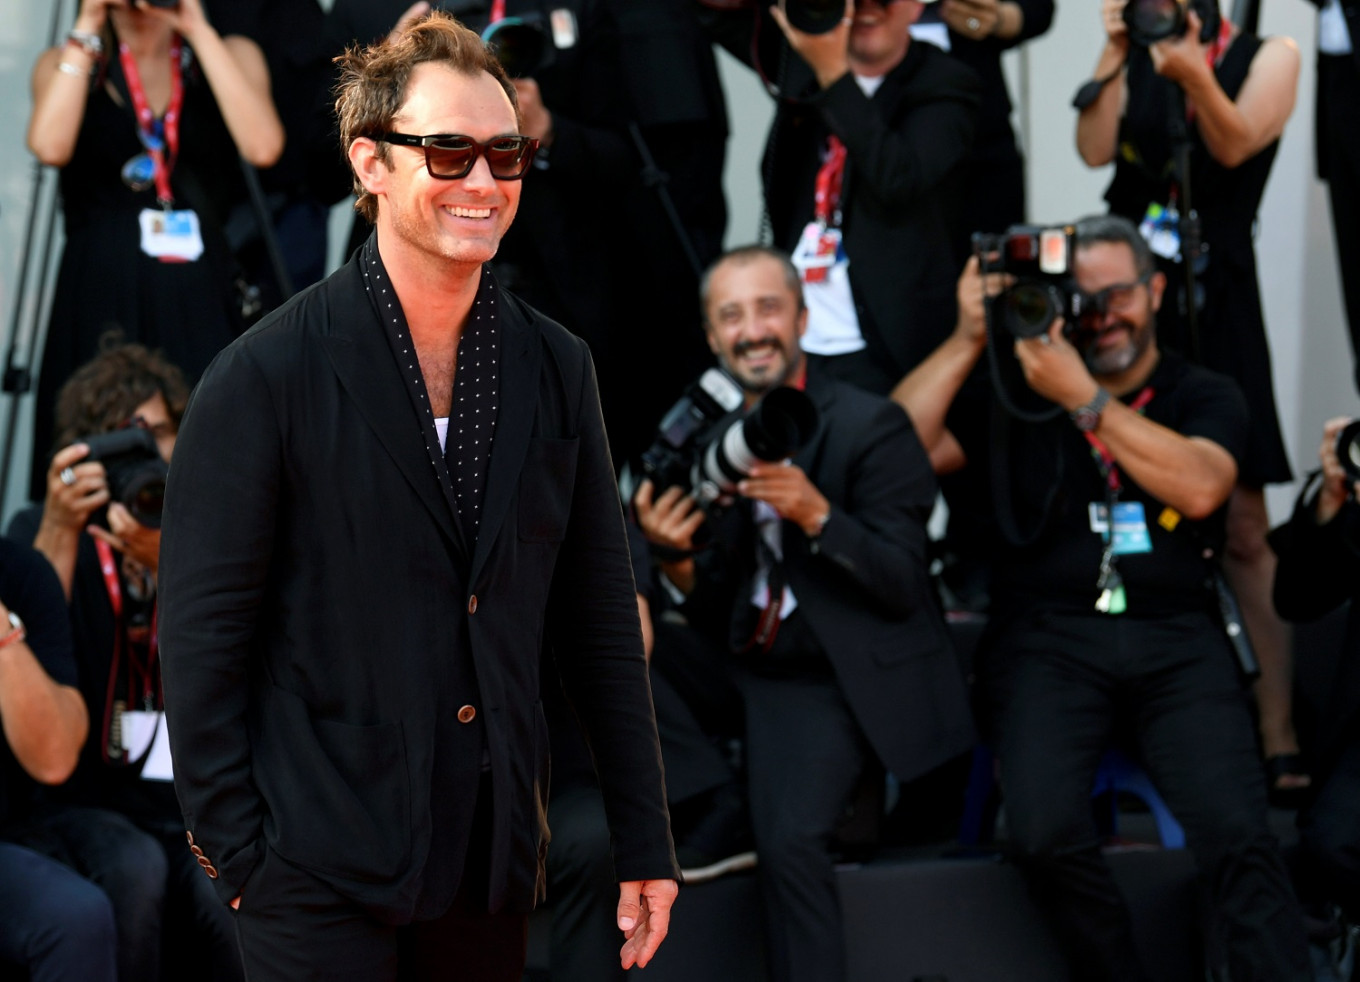 Jude Law brings papal drama follow-up to Venice